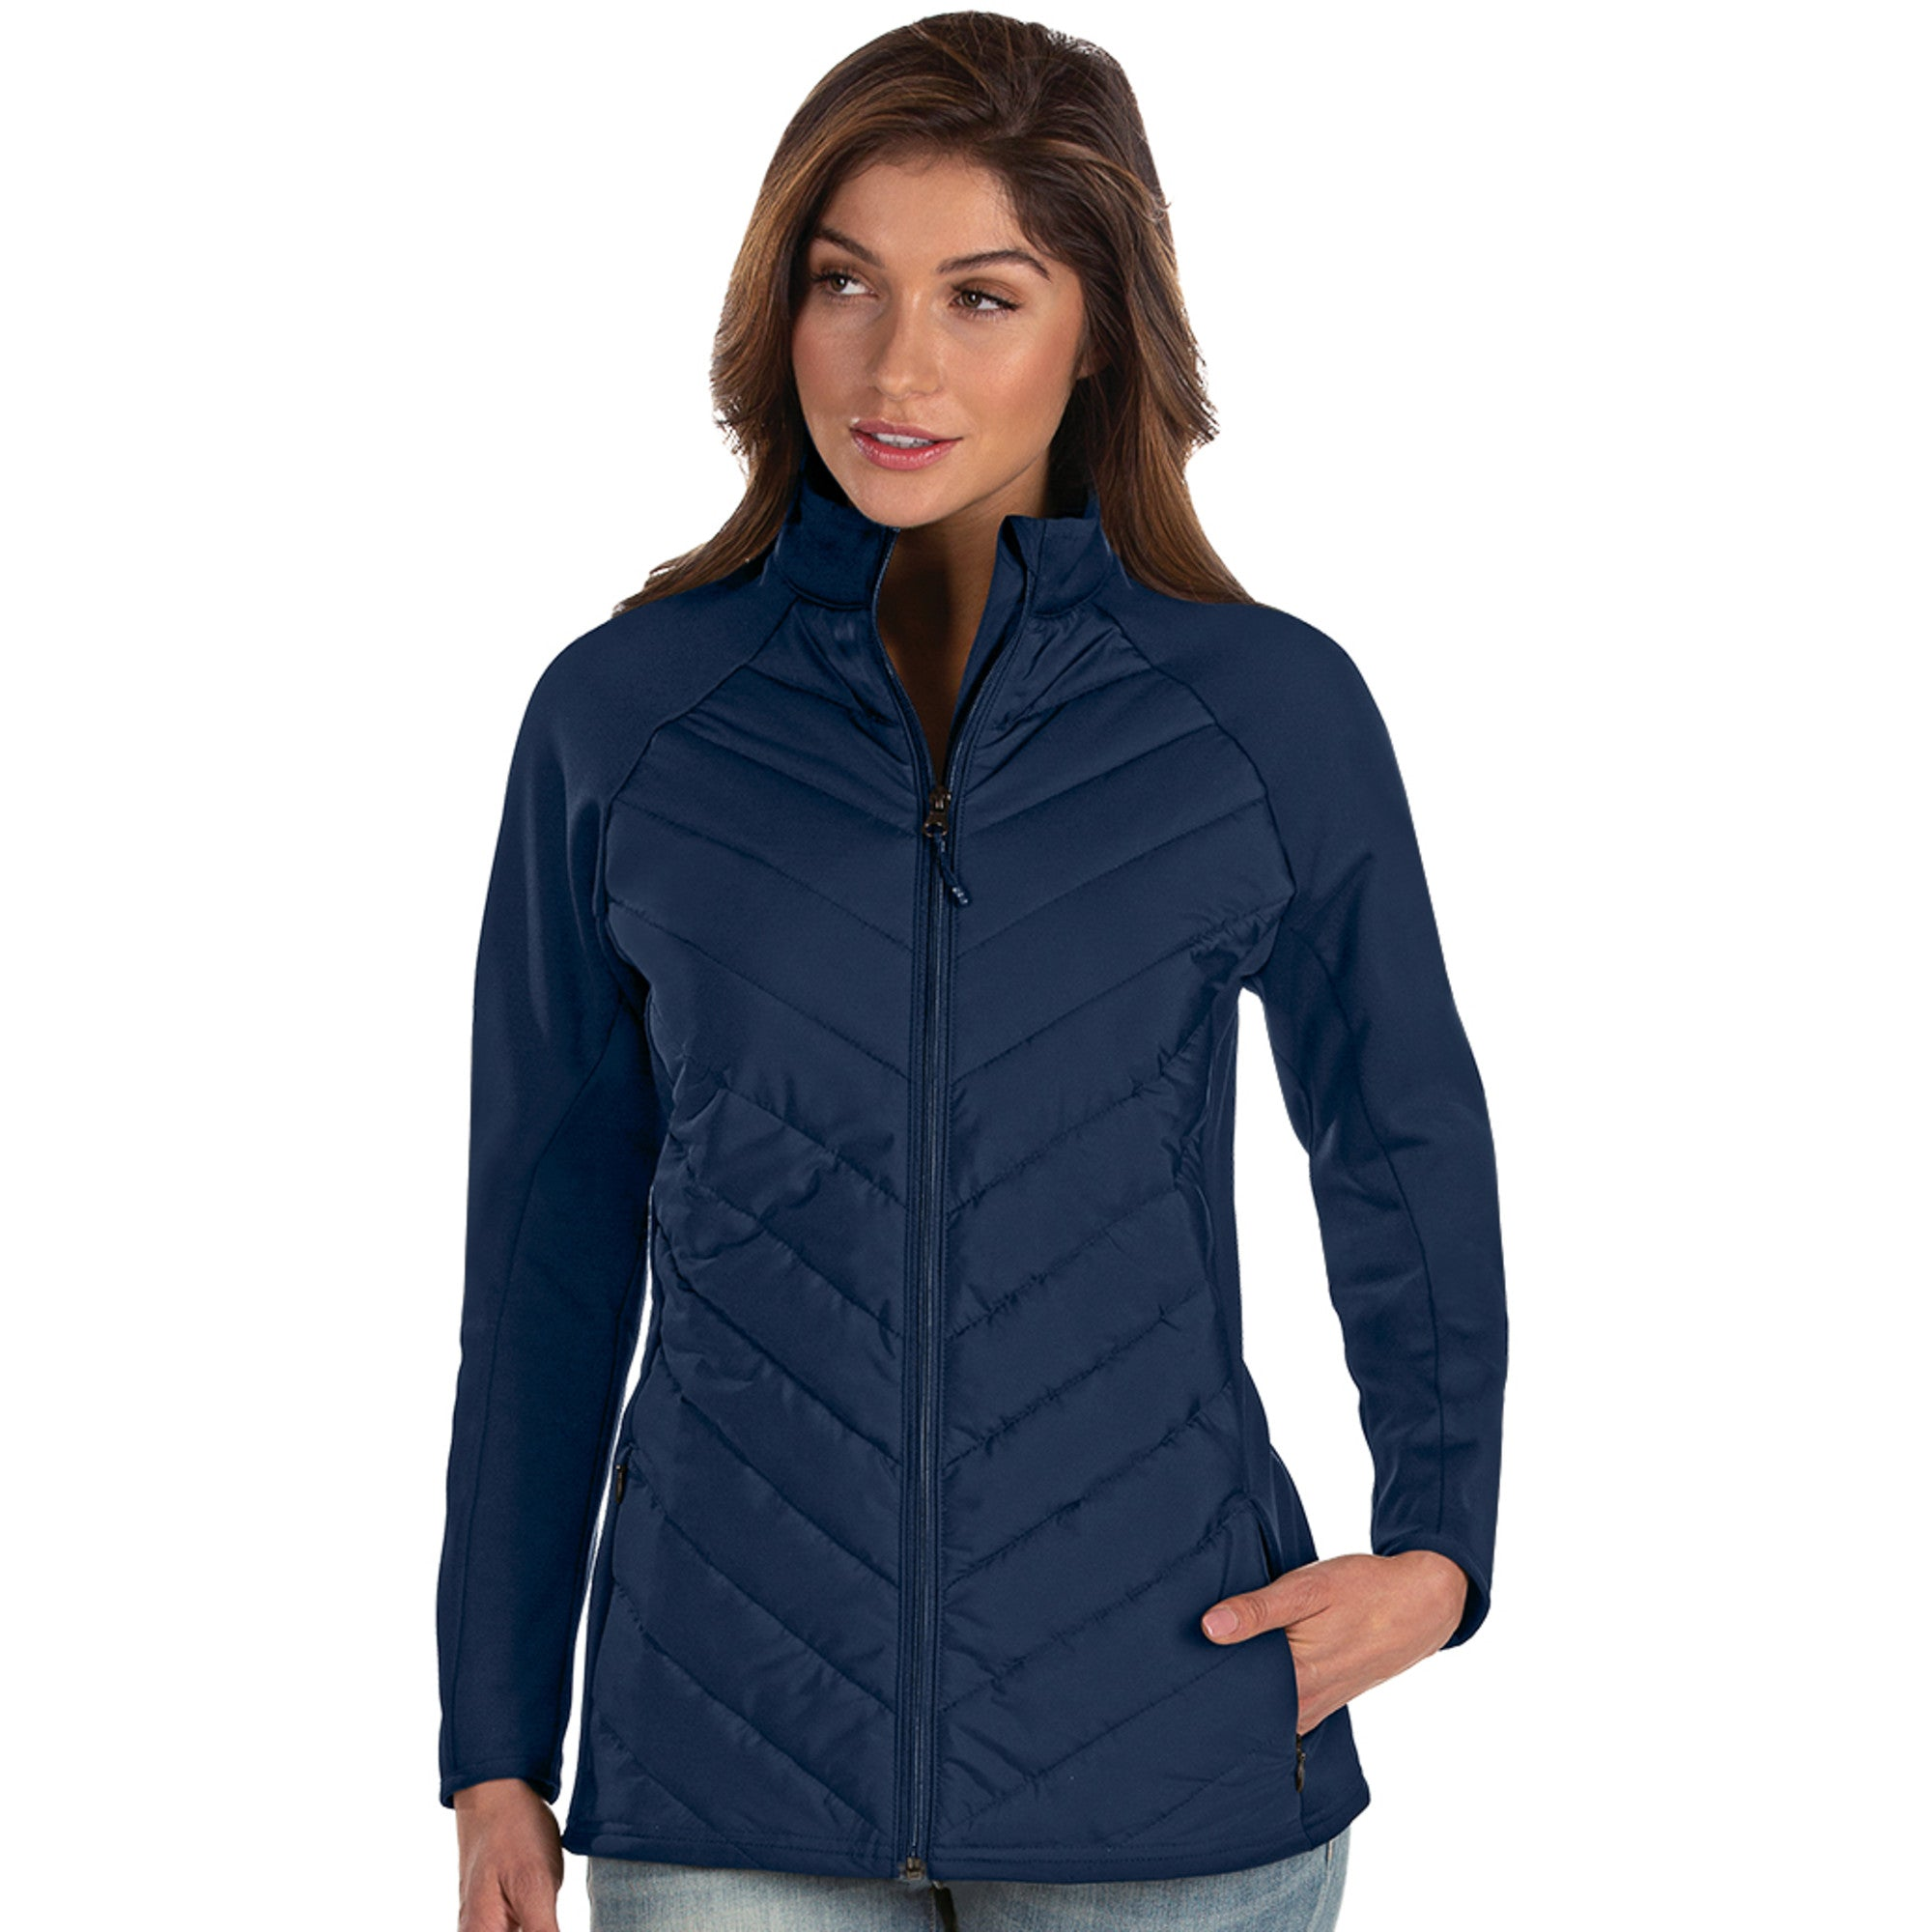 Antigua Women's Altitude Jacket - A104345